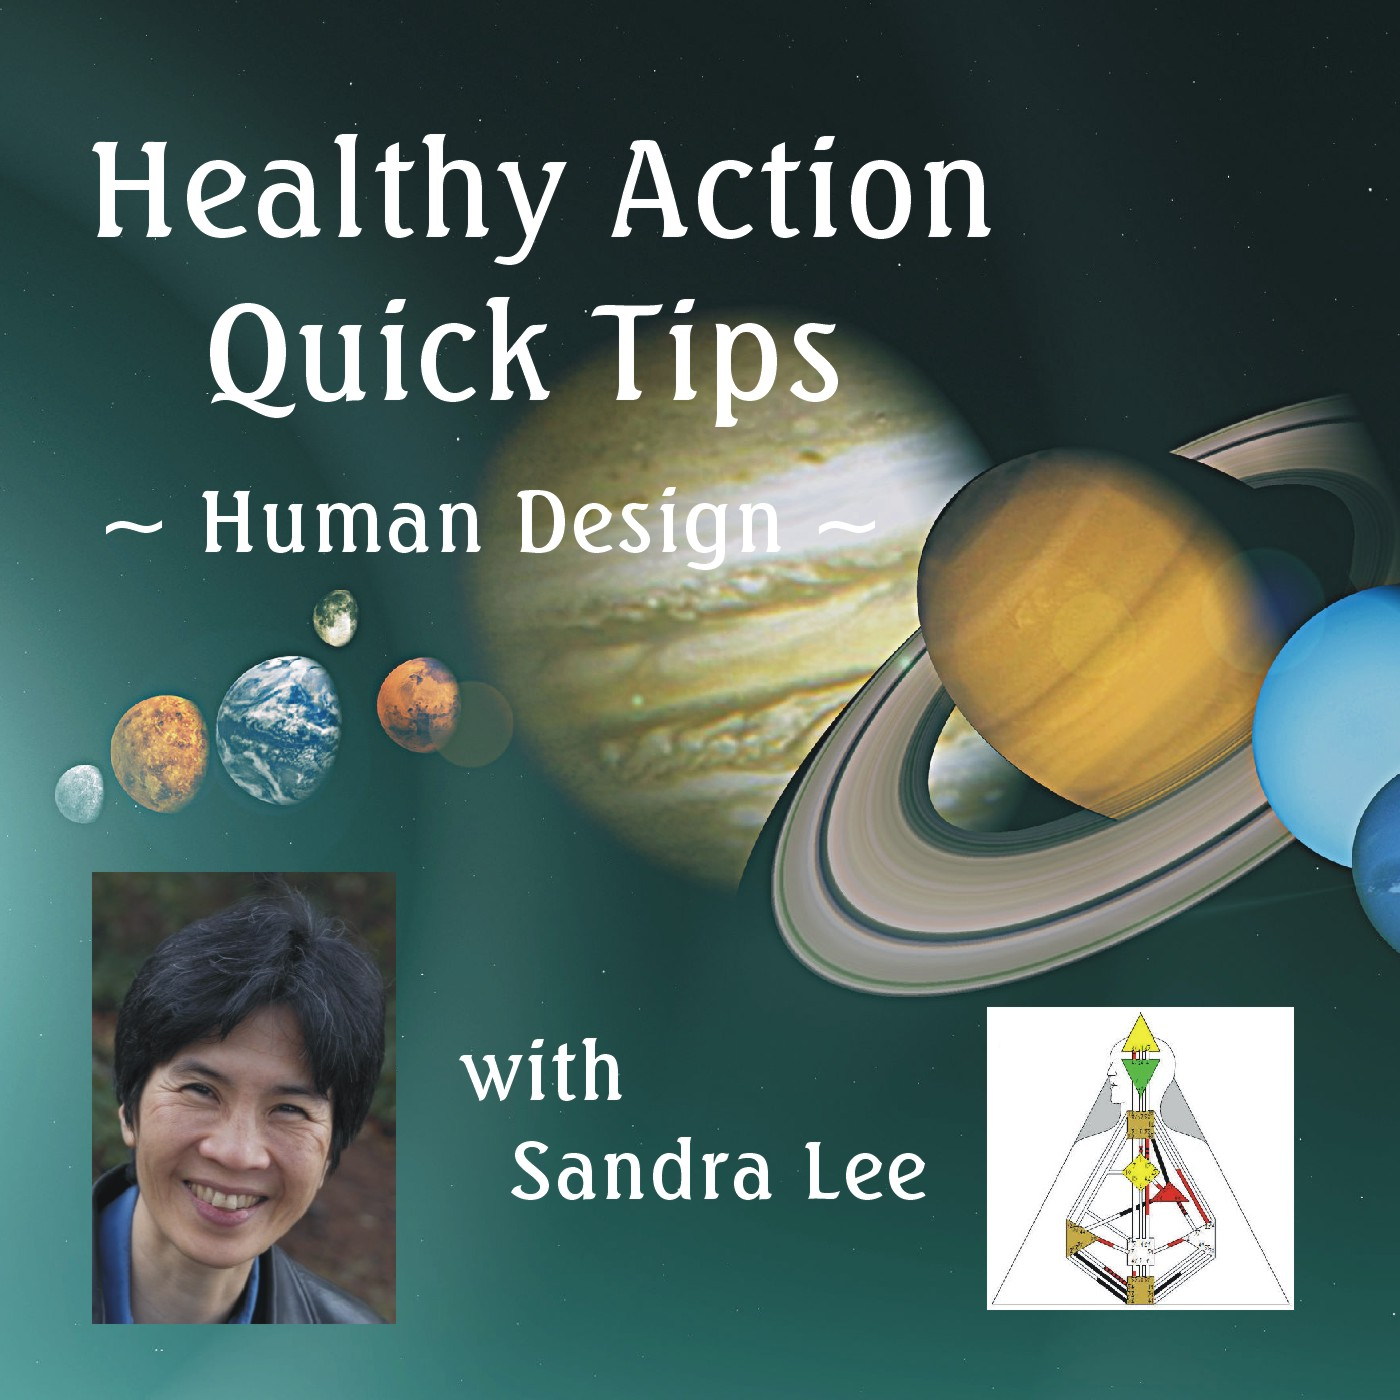 Quick Tips  are super short. Just tips, not much information. Where else can you get practical, useful tips in less than 2 minutes??   Small actions can help you be happier and healthier.